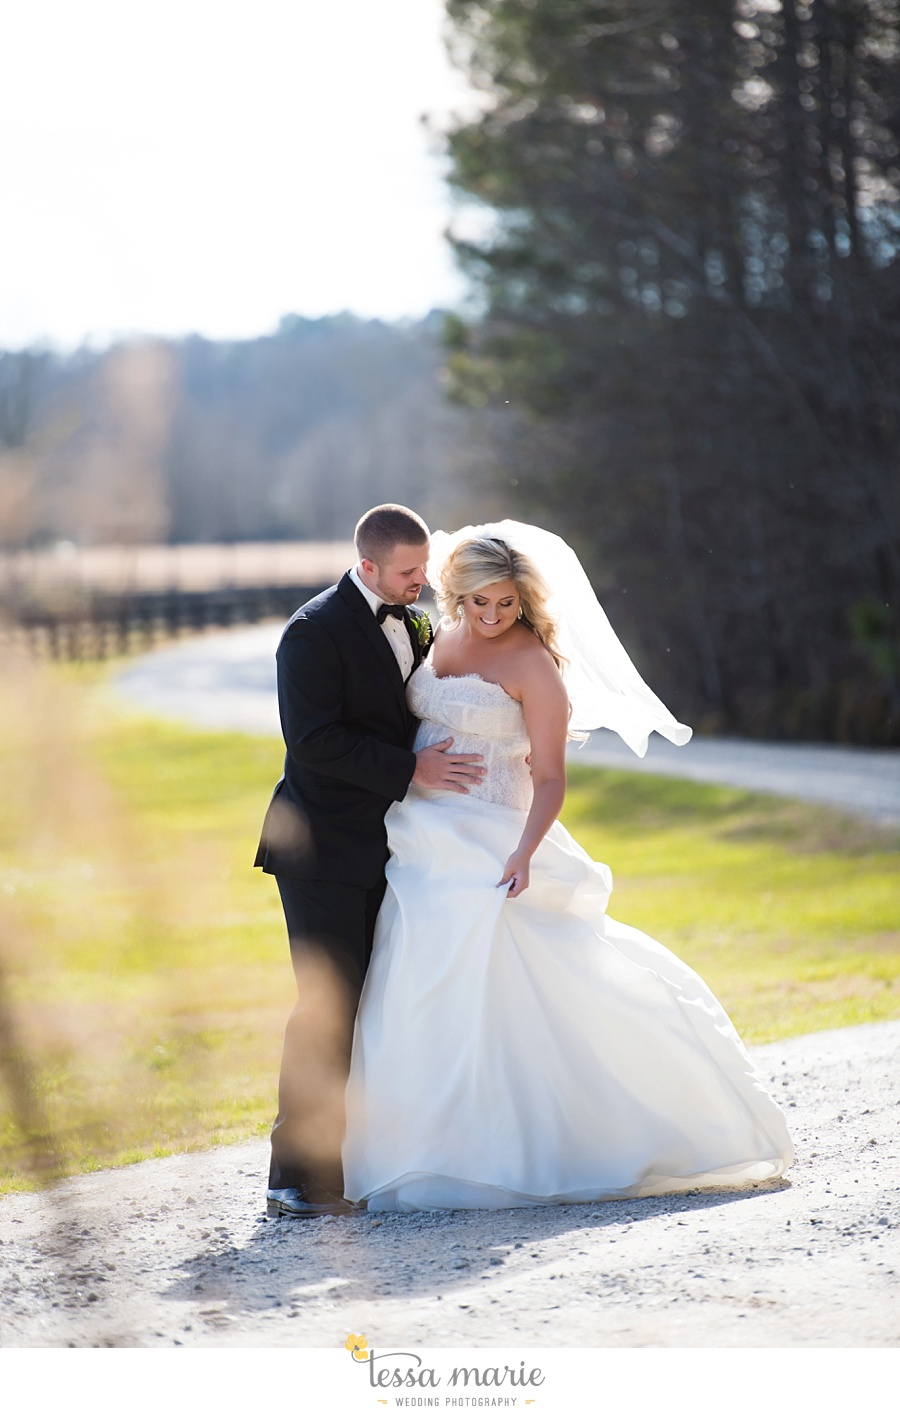 foxhall_outdoor_wedding_stables_pictures_tessa_marie_weddings_kayla_buck_bloomin_bouquets_joan_pillow_atlanta_wedding_pictures_0078